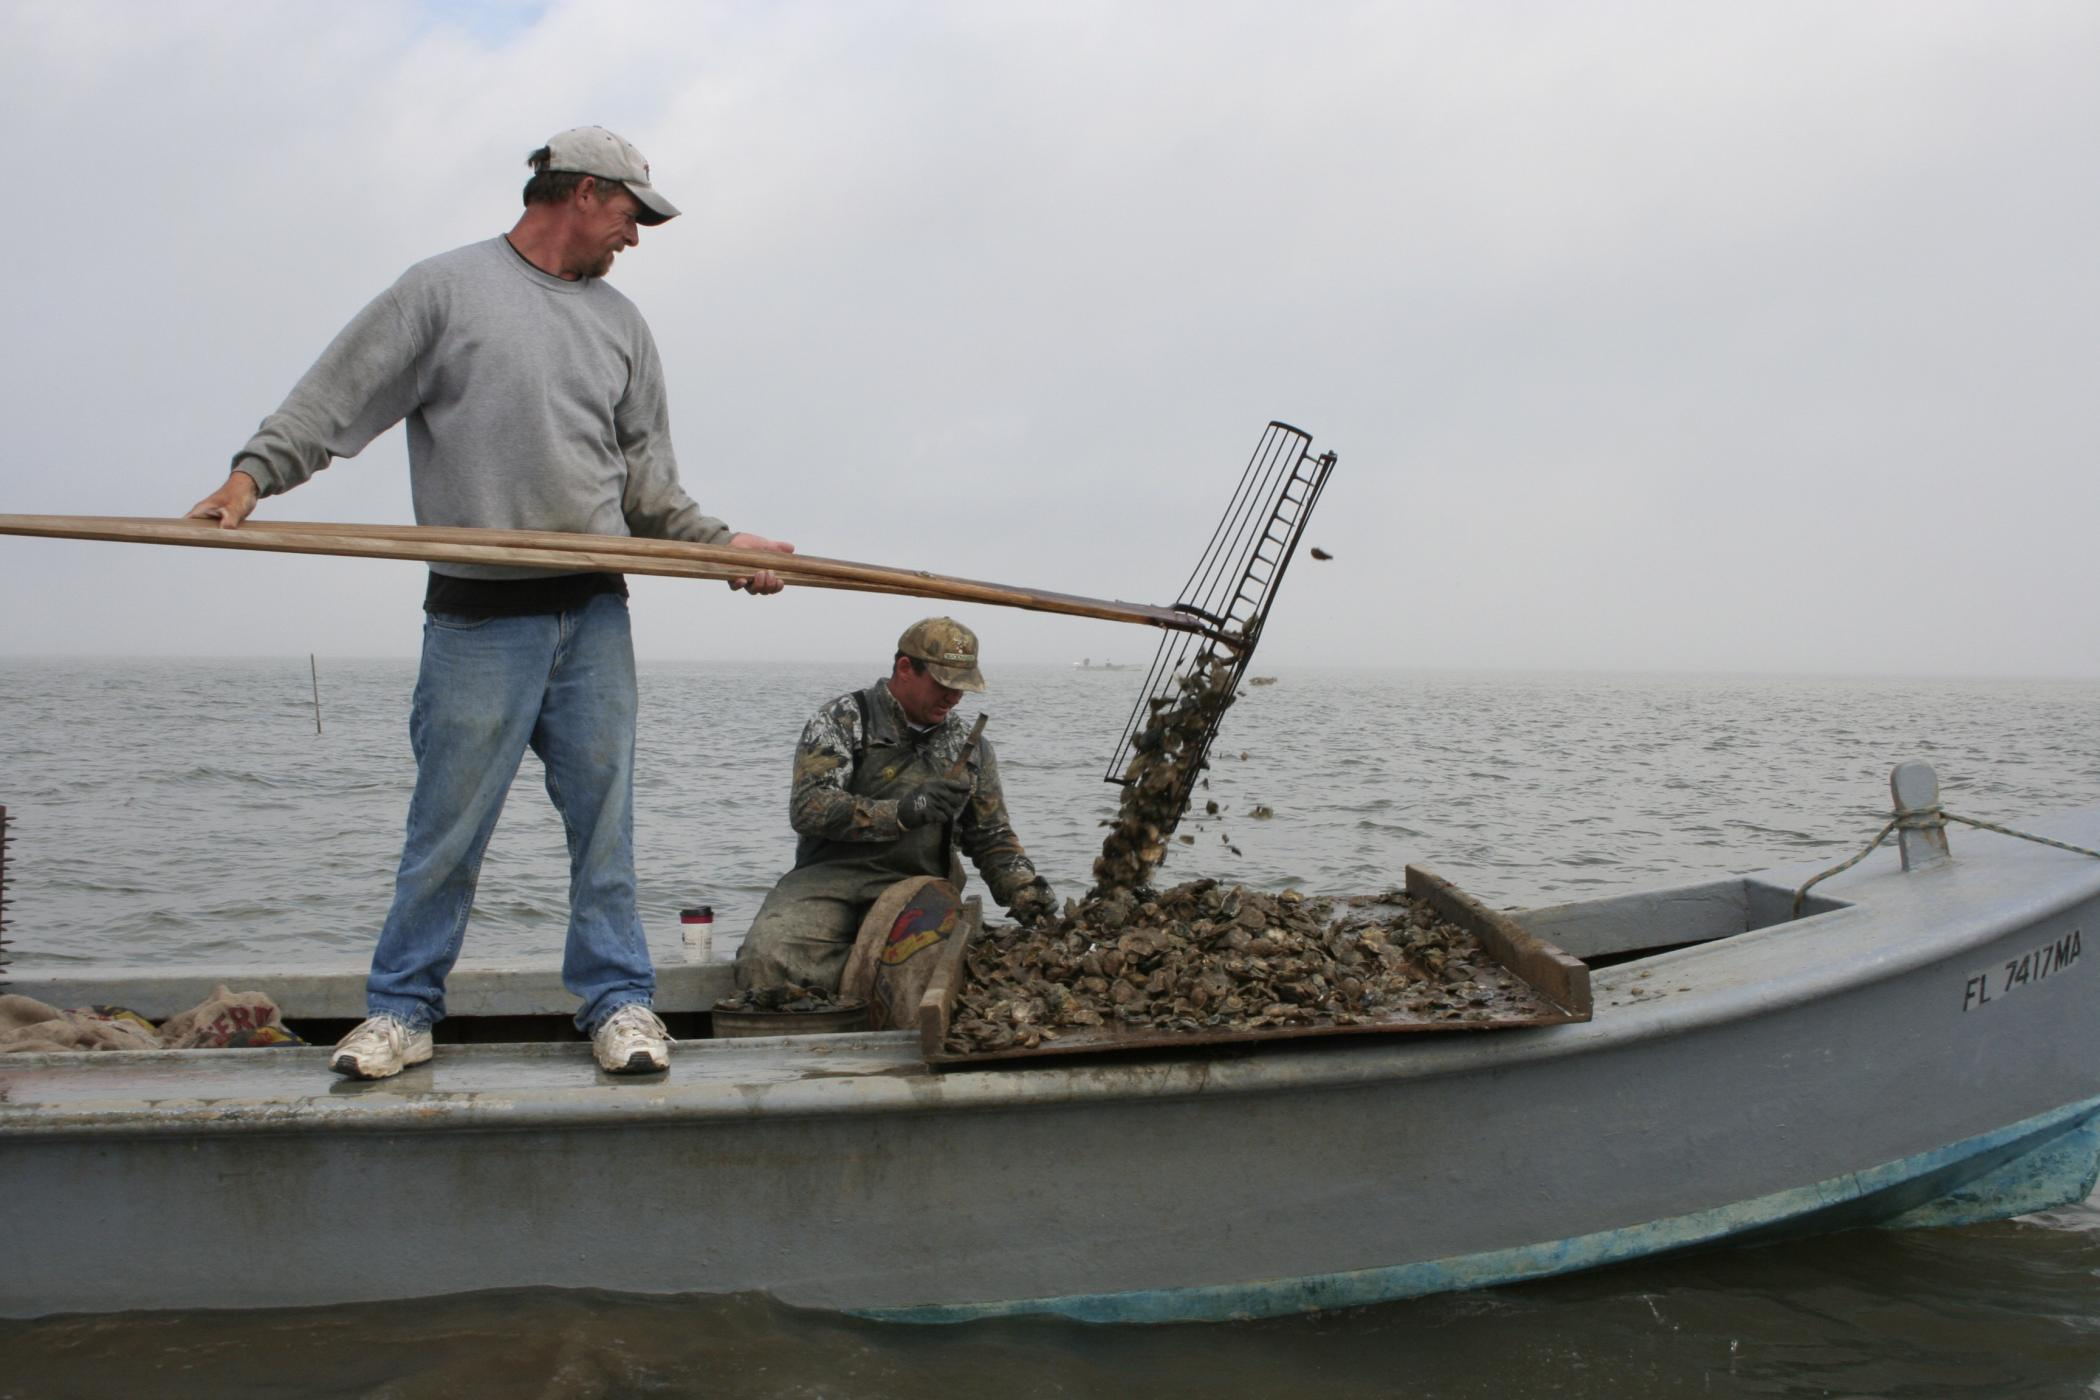 Fishermen oystering in Apalachicola Bay. Florida's oyster industry has been in decline, which many fishers blame on Georgia's overuse of water (USFWS/Flickr)